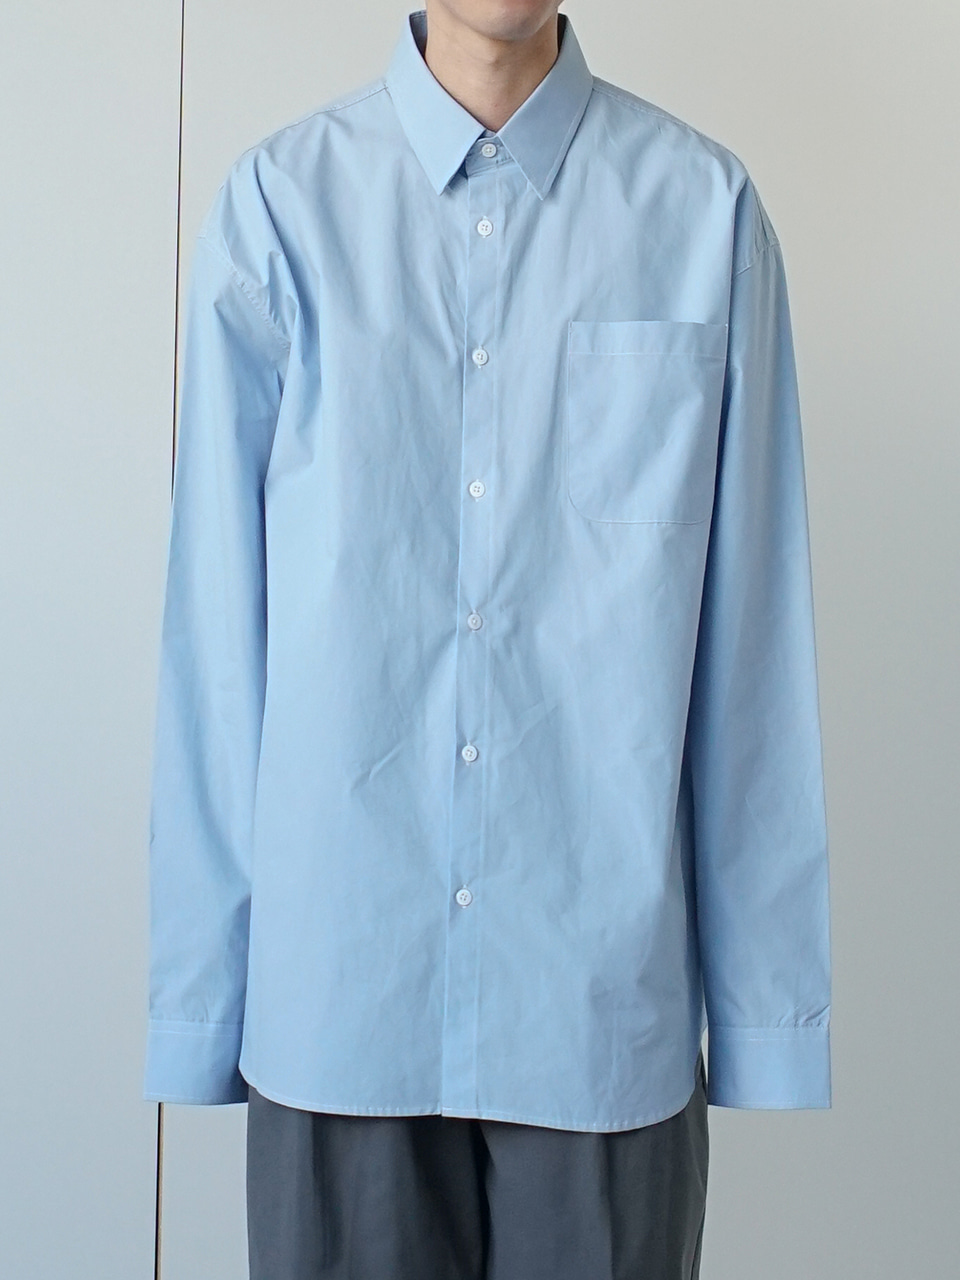 Bay Relaxed Oxford Shirt (3color)